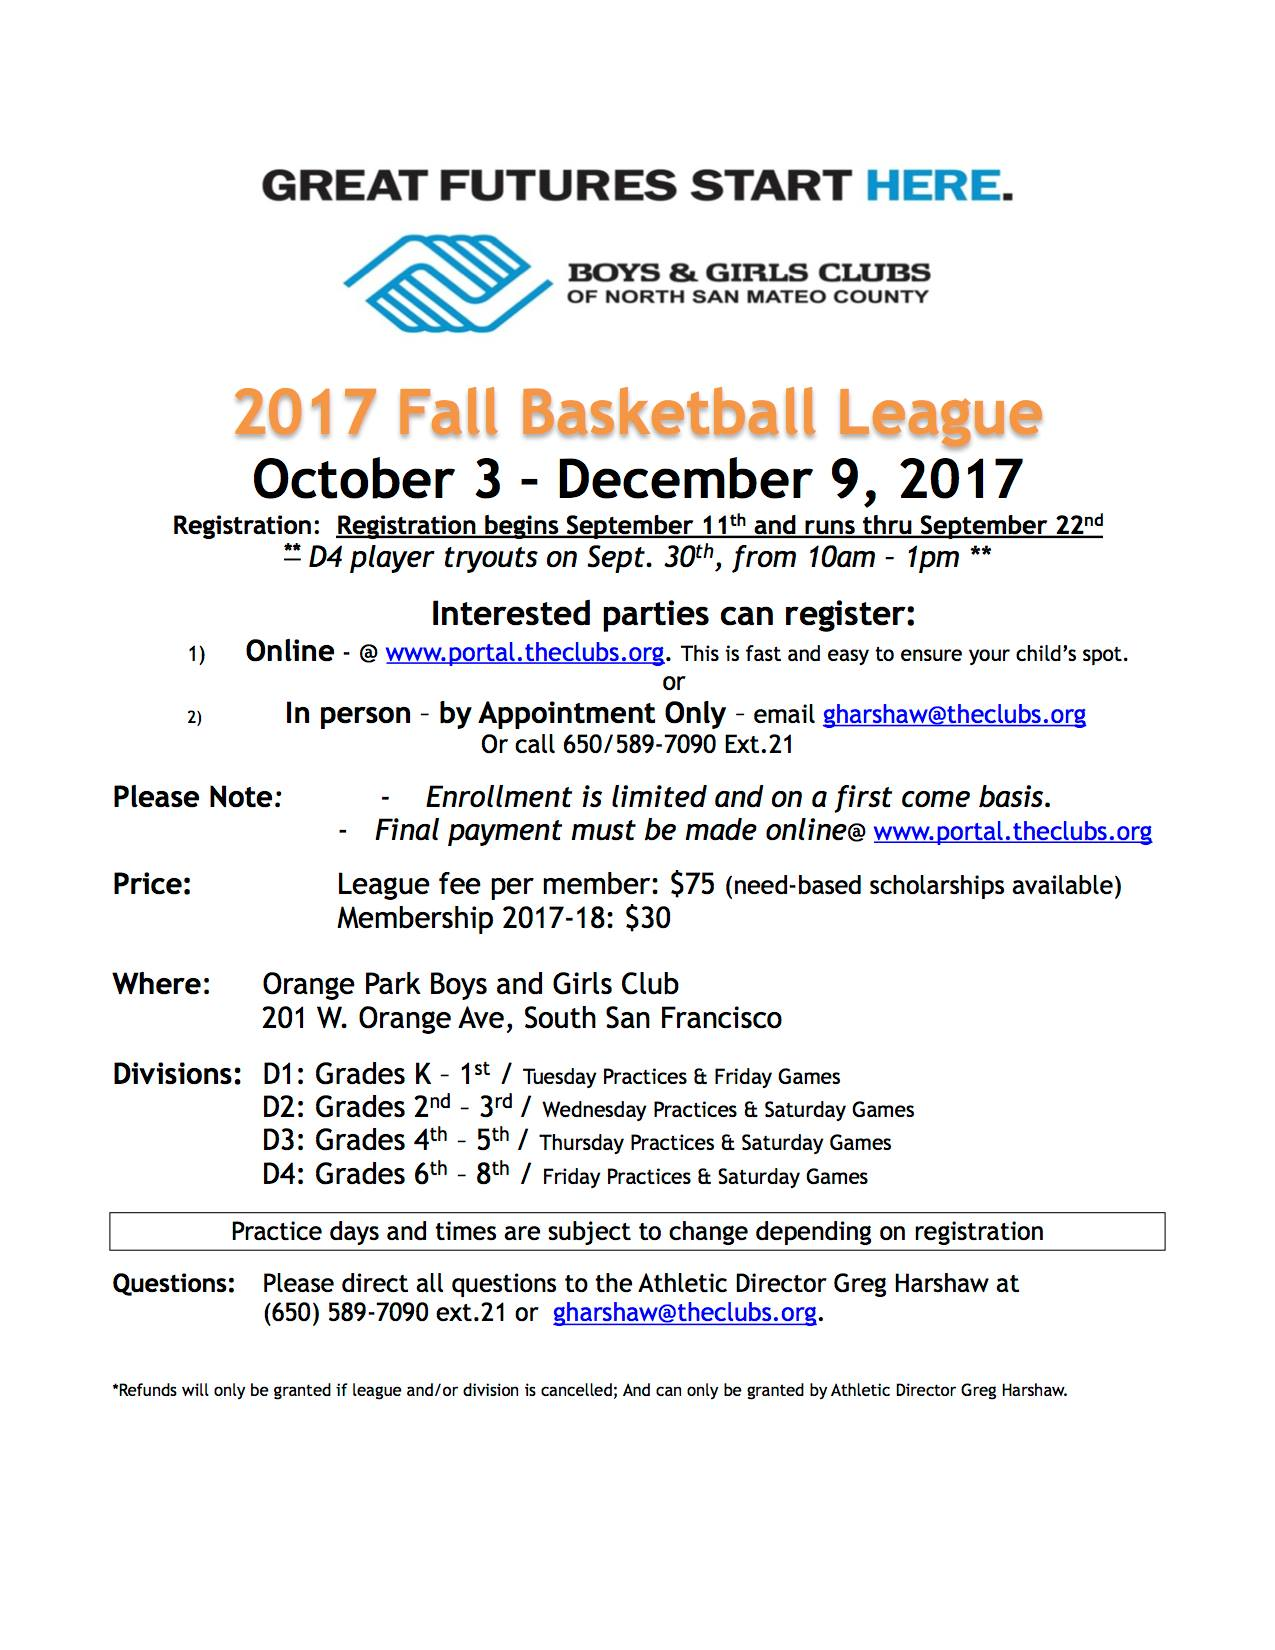 Boys and Girls Club Announce Fall Basketball Season